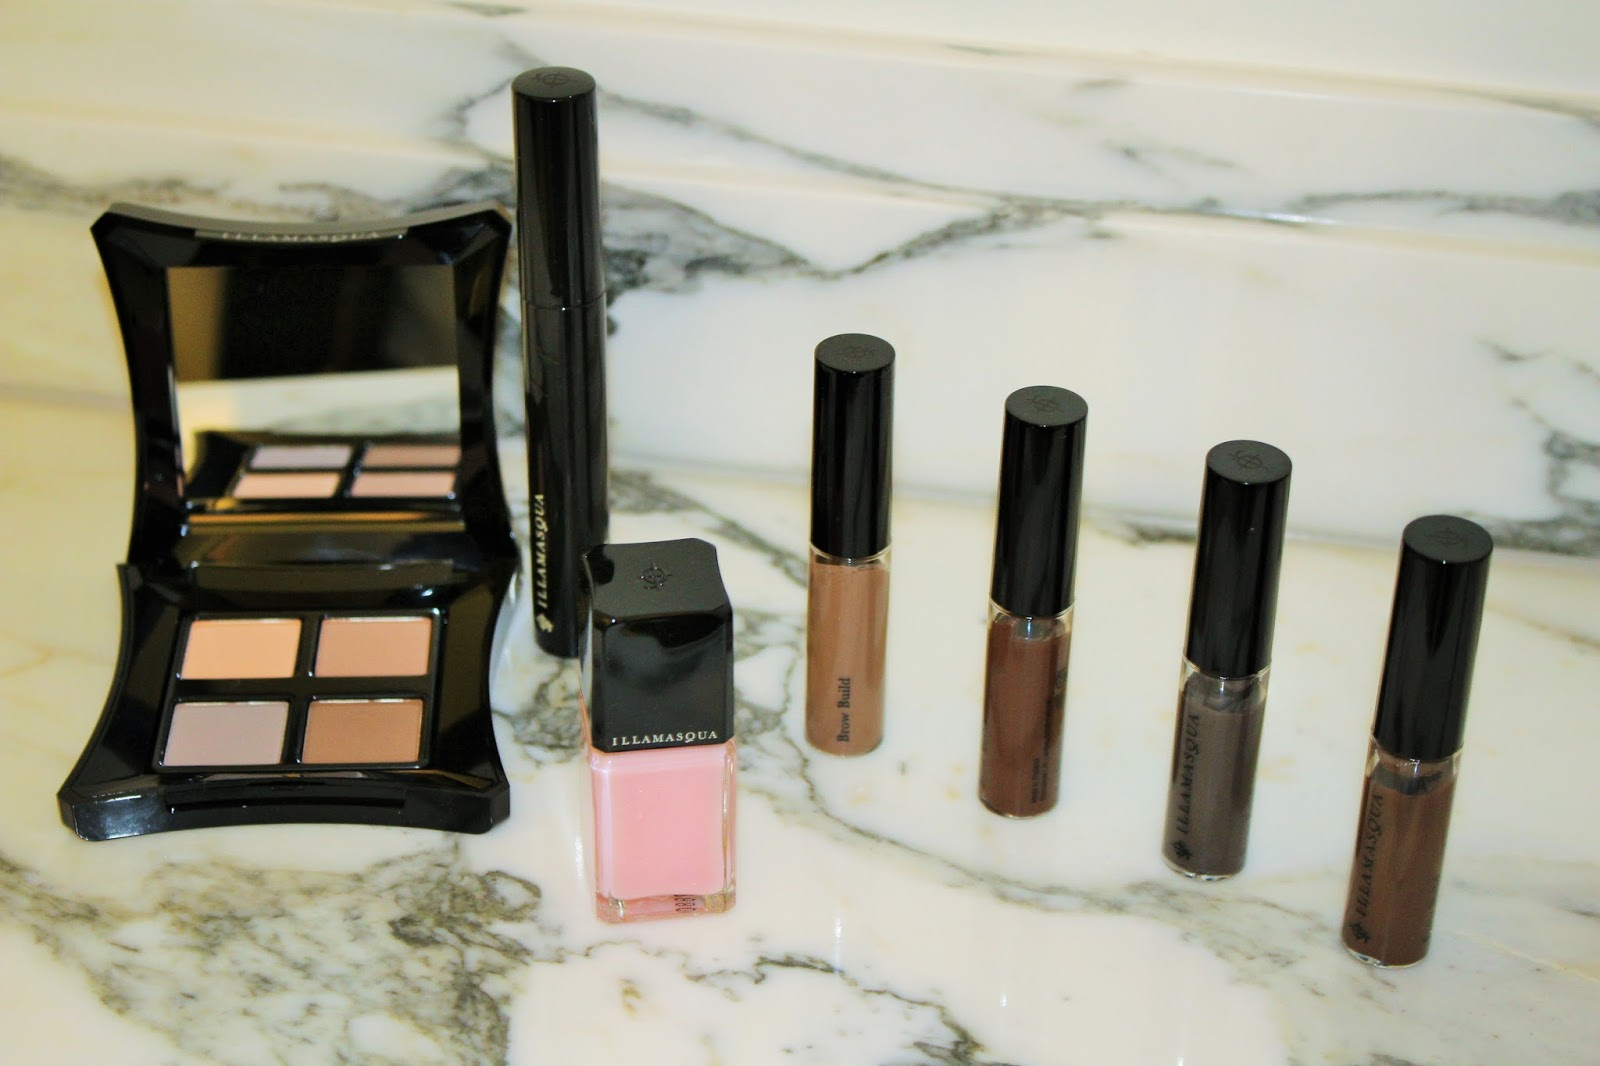 Debenhams Beauty Press Day - SS16 13 - Illamasqua